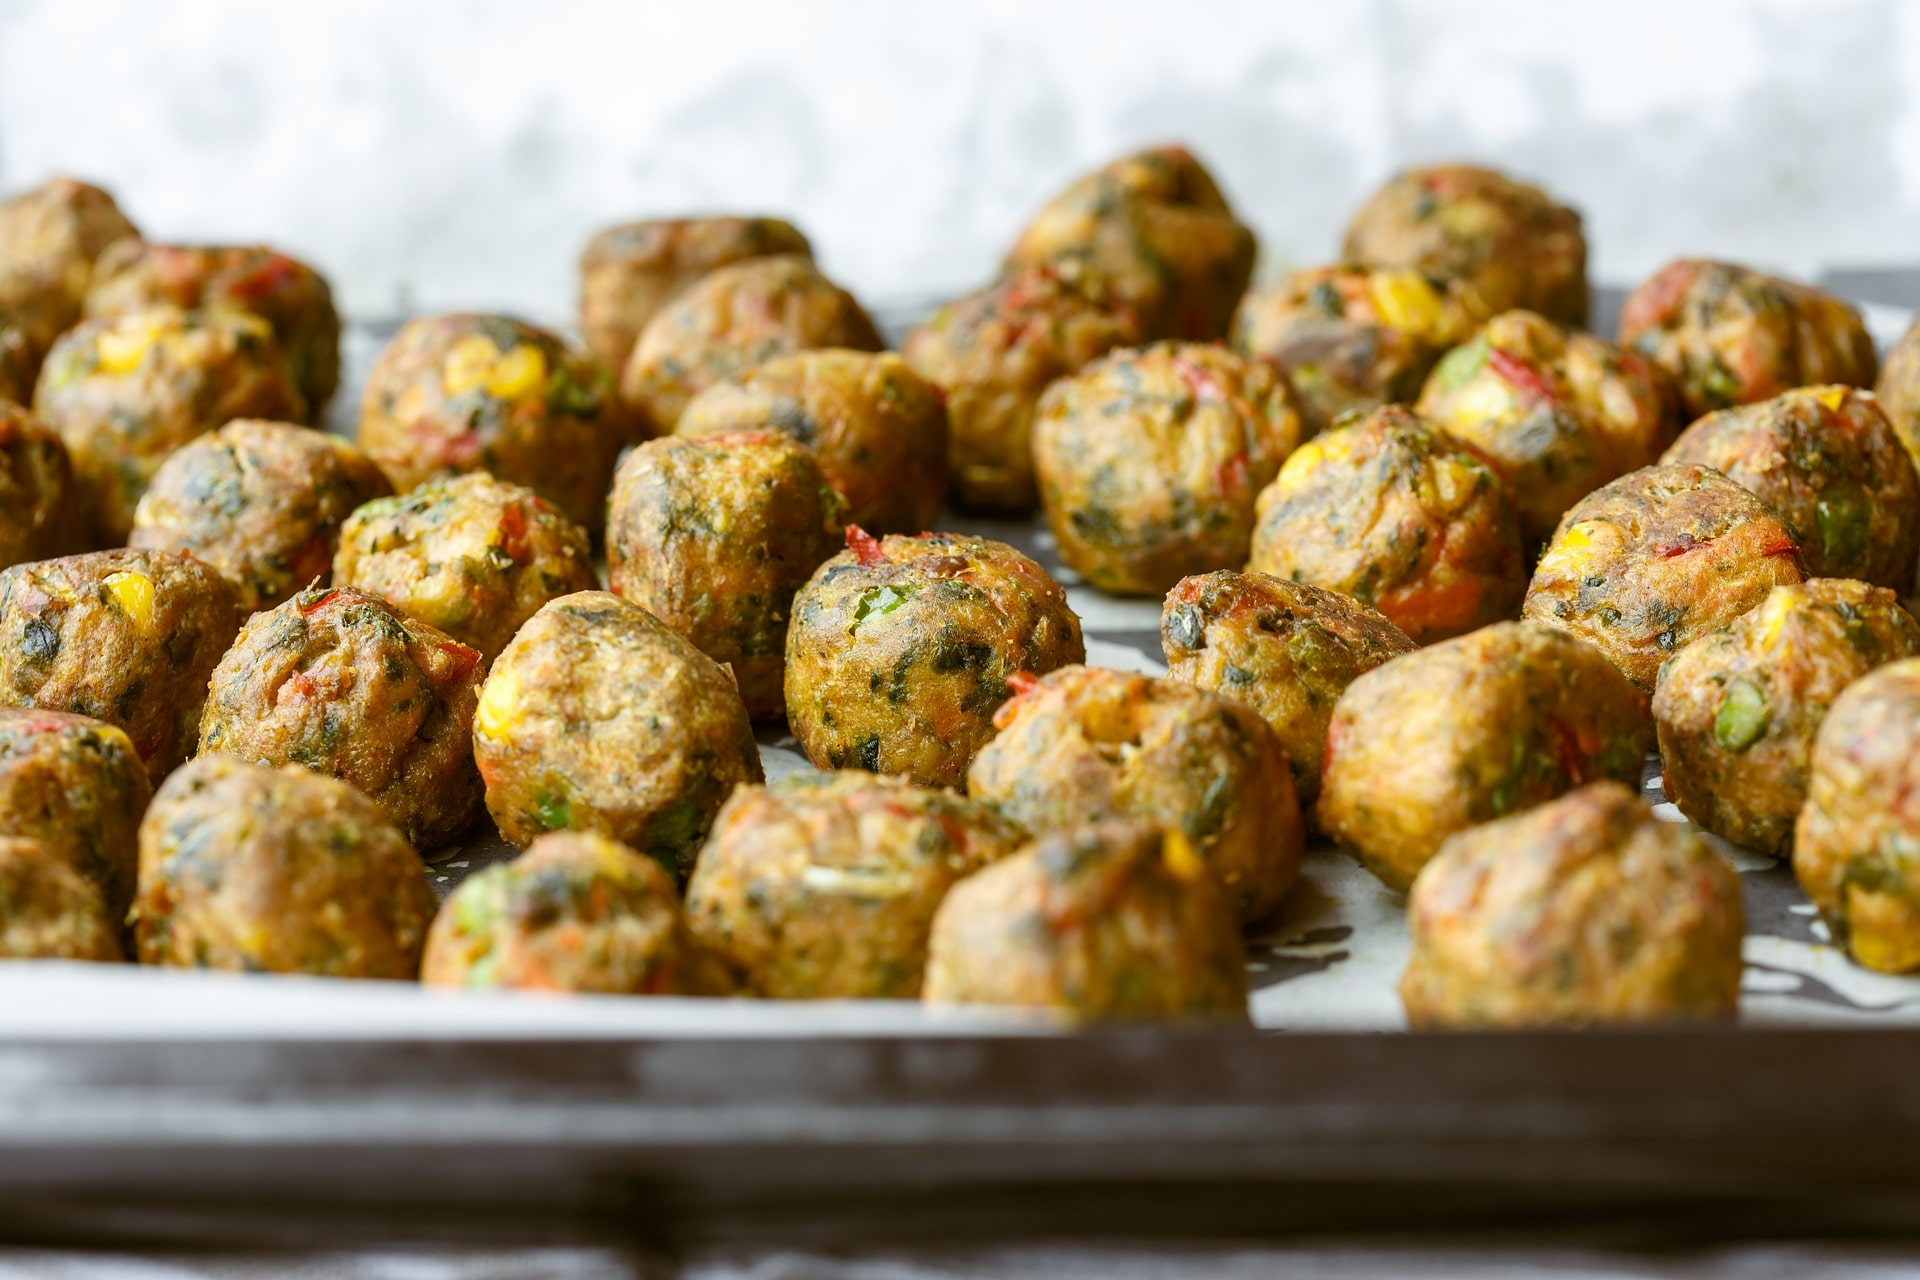 VEGGIE balls - These would be a great accompaniment to a salad or as a side. These balls are made out of halloumi and carrots, seasoned and then deep fried. Recipe from Olive Magazine.